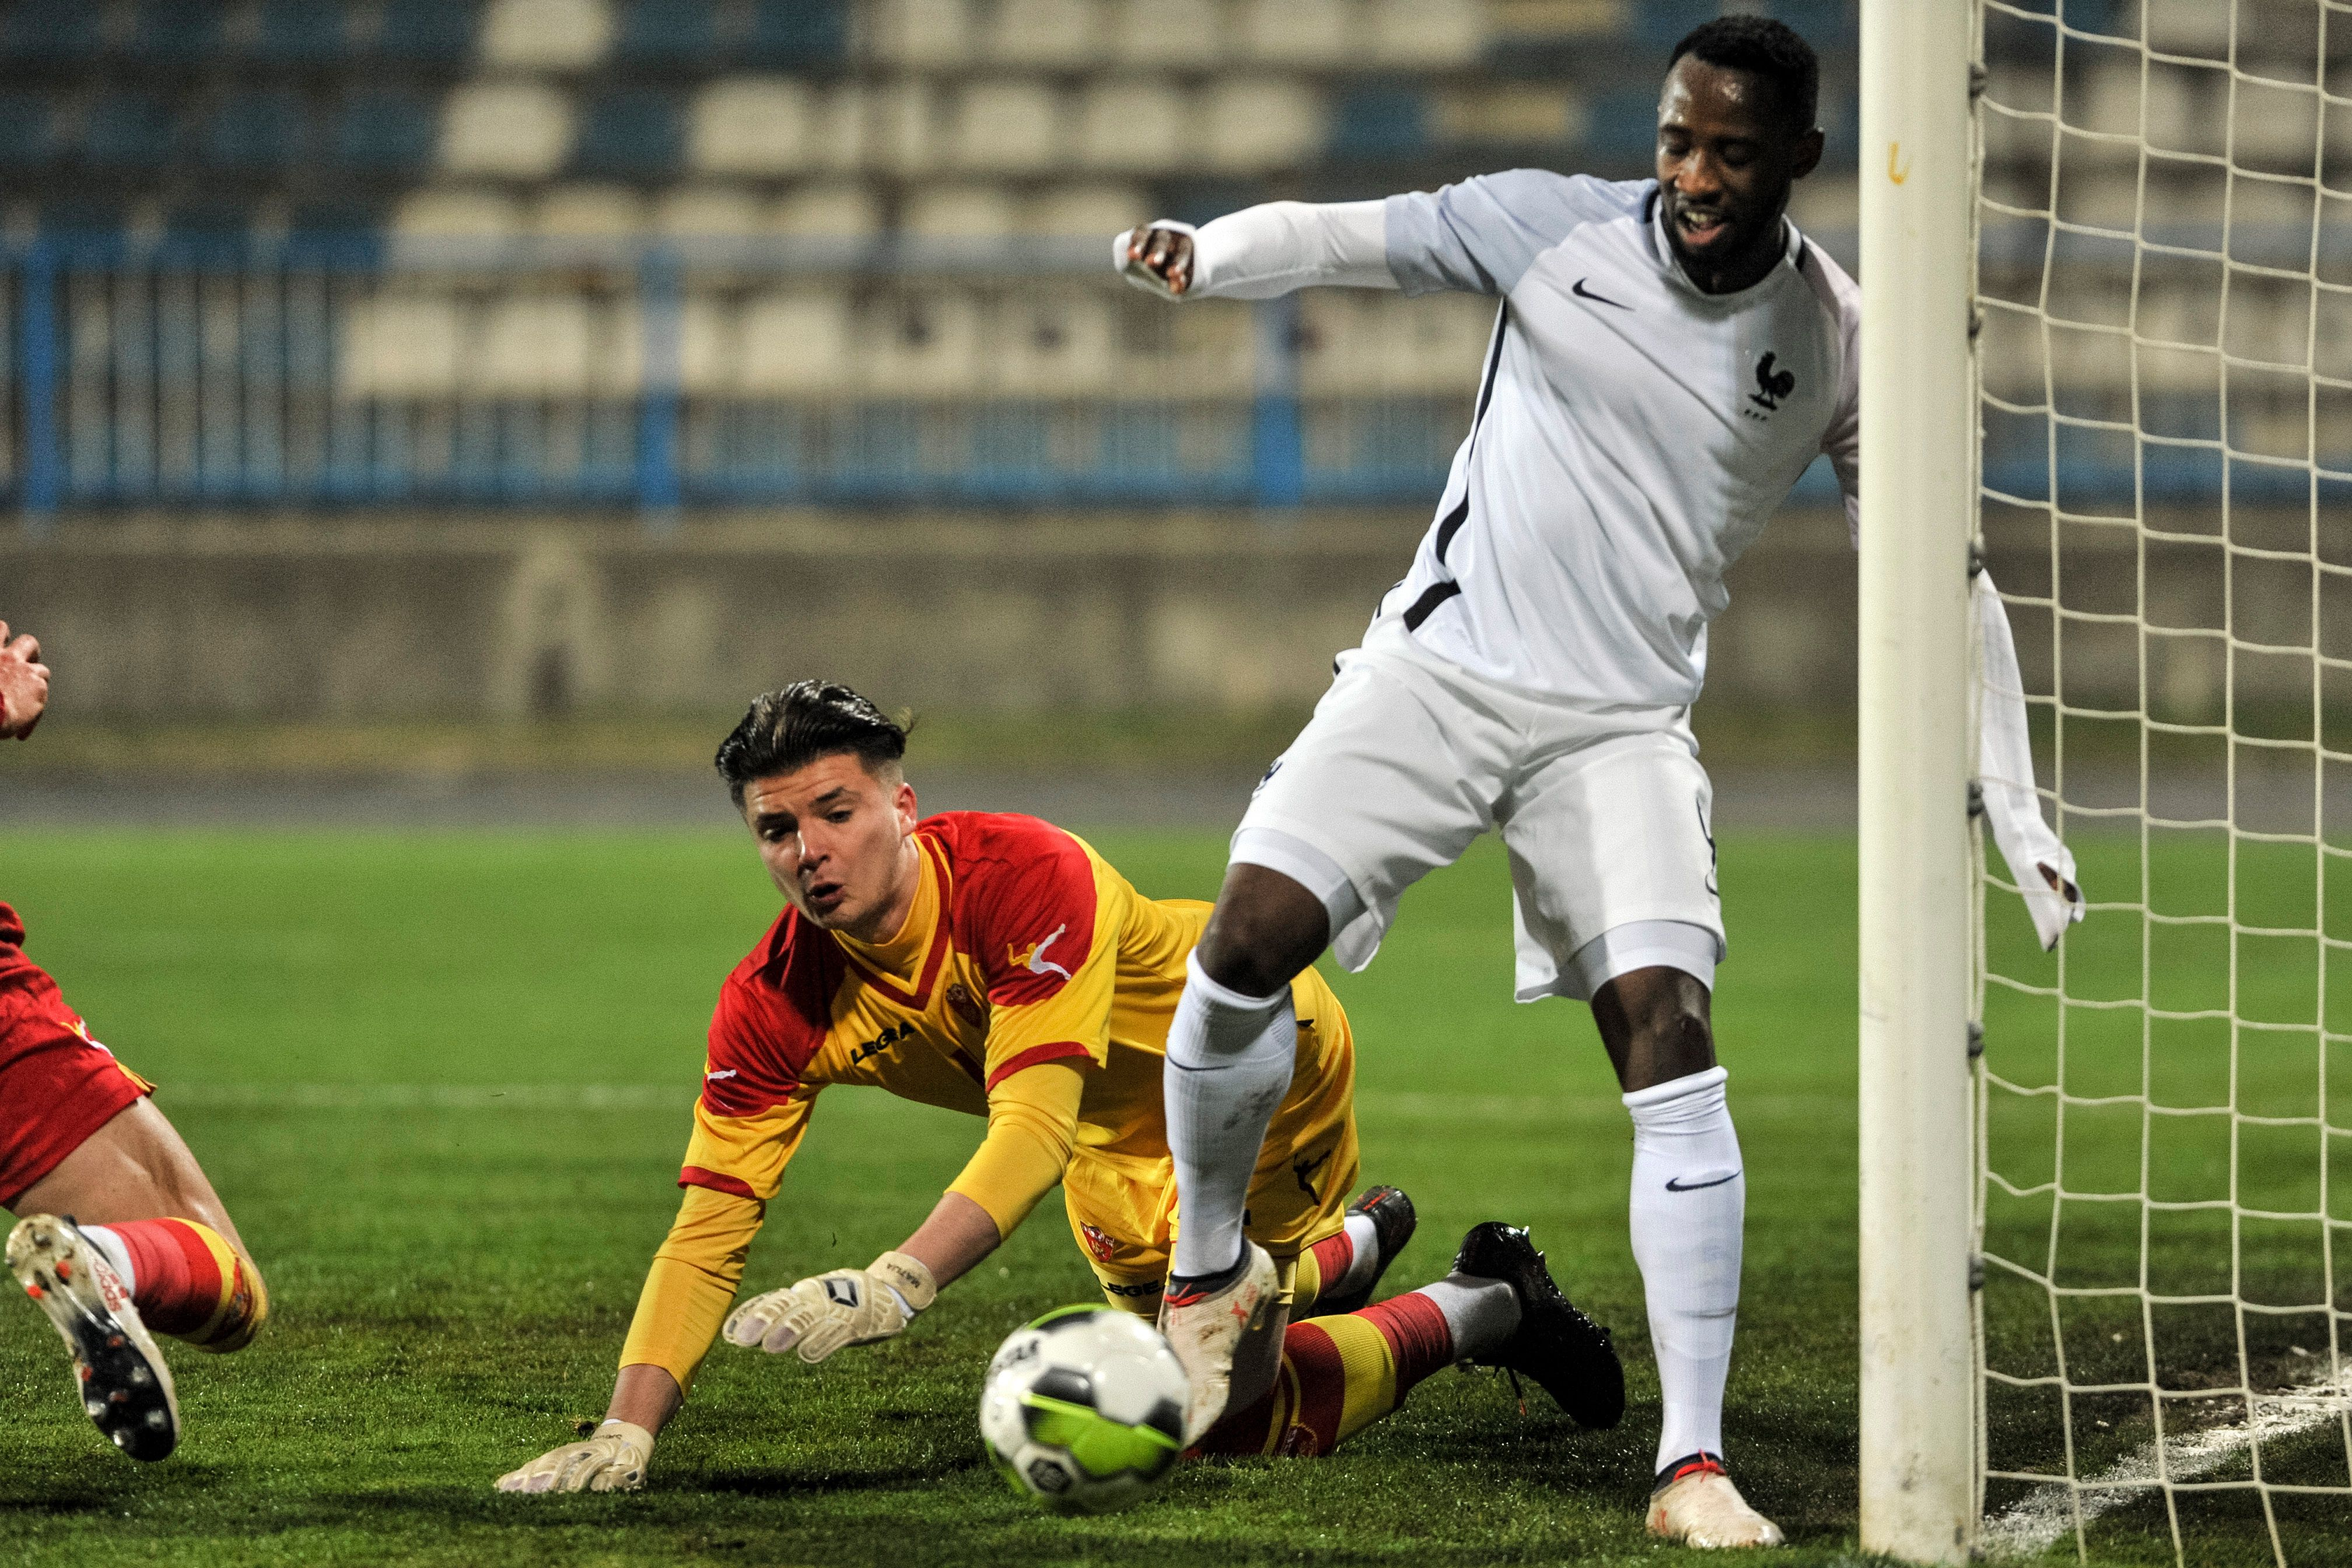 West Ham United are keeping tabs on Moussa Dembele who is in action in the picture